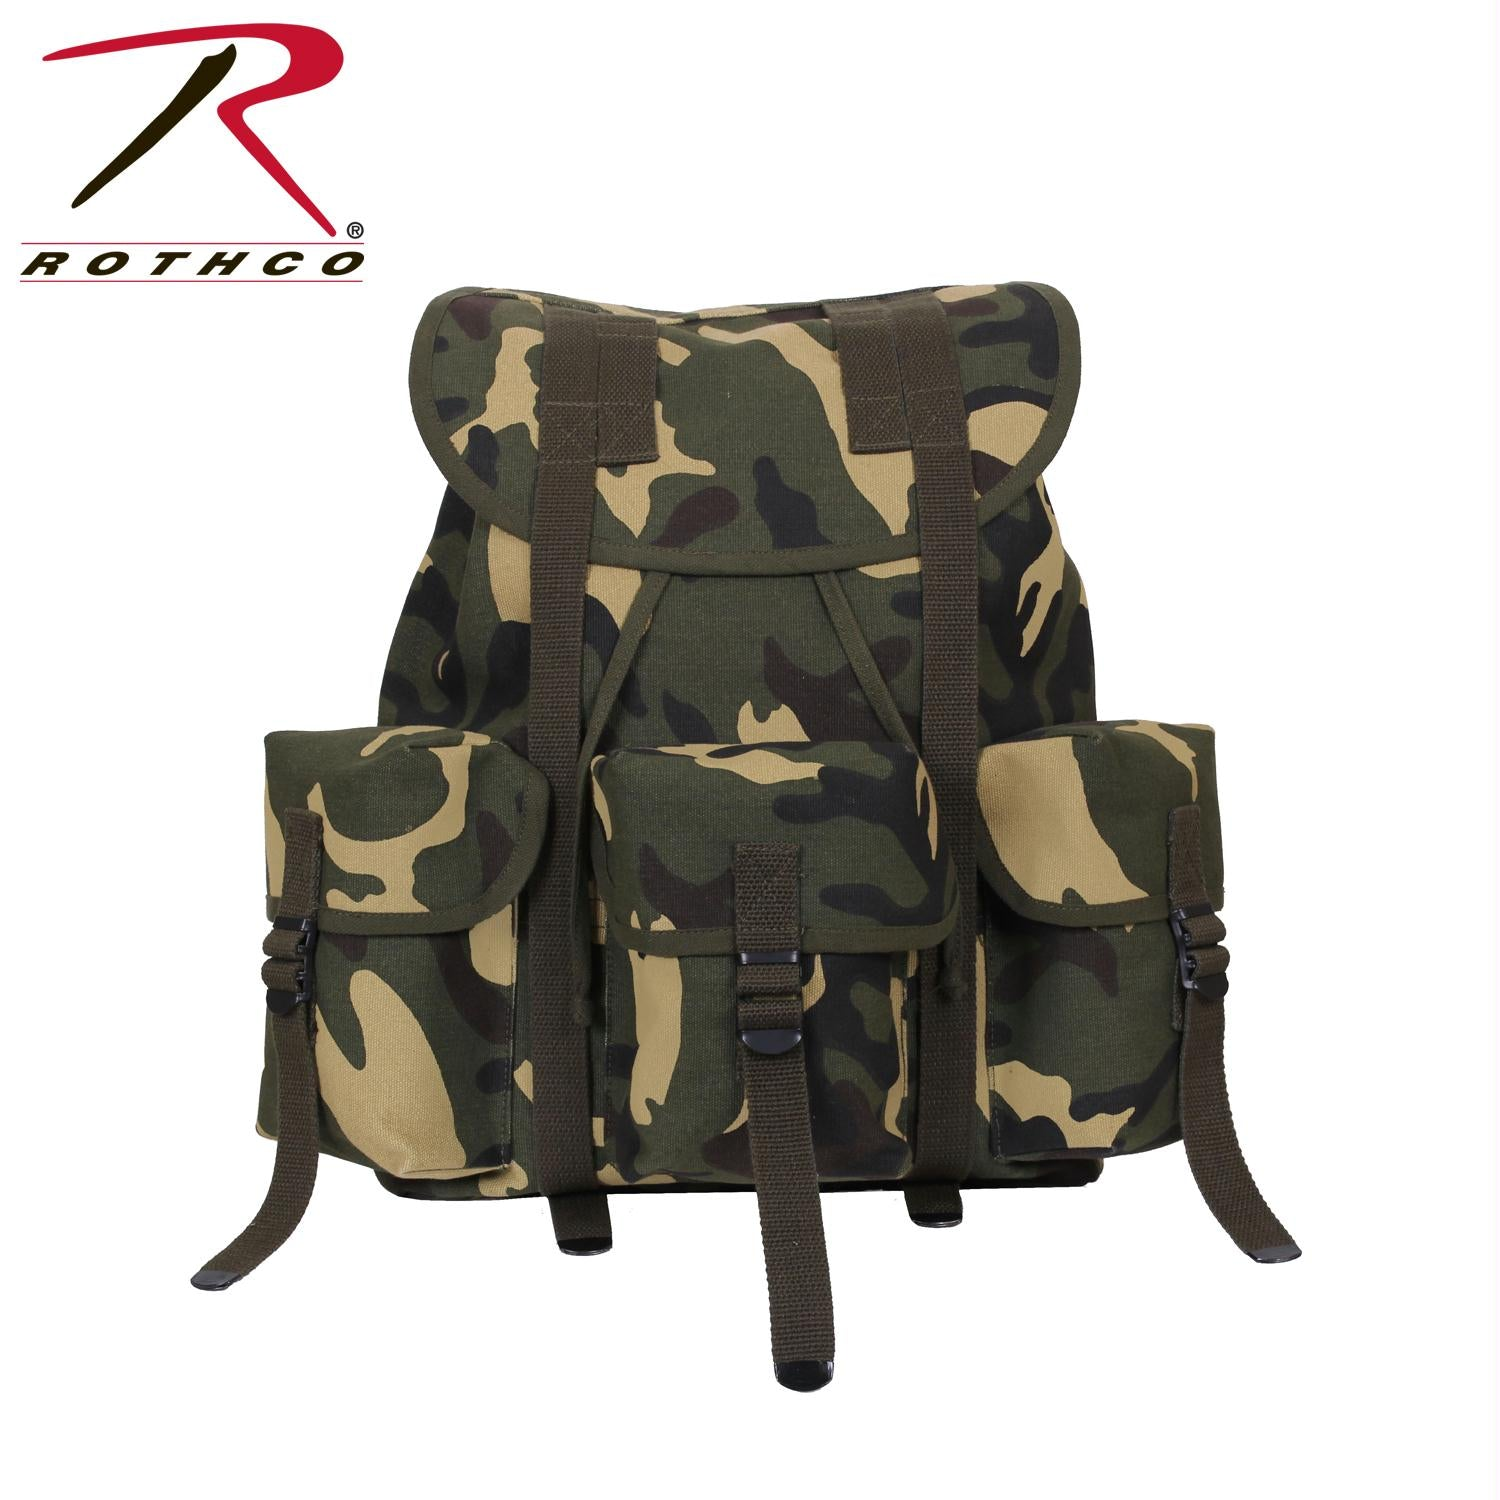 Rothco G.I. Type Heavyweight Mini Alice Pack - Woodland Camo